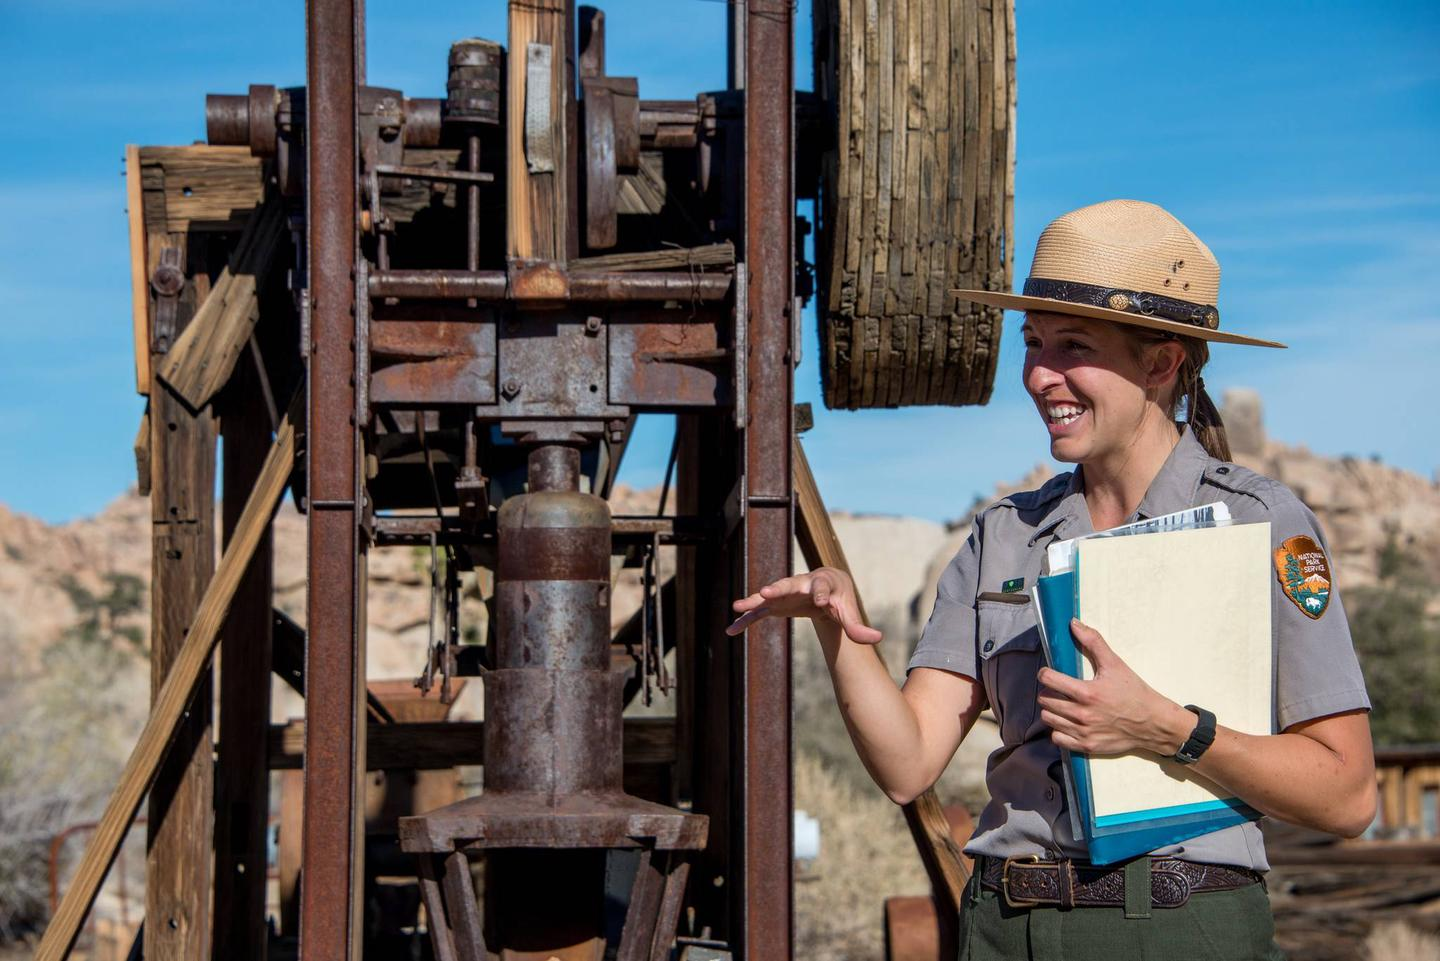 A woman wearing a NPS uniform is standing in front of an old gold mill.Gold mining was a way of life for many settlers in the region and old gold mills can still be found.